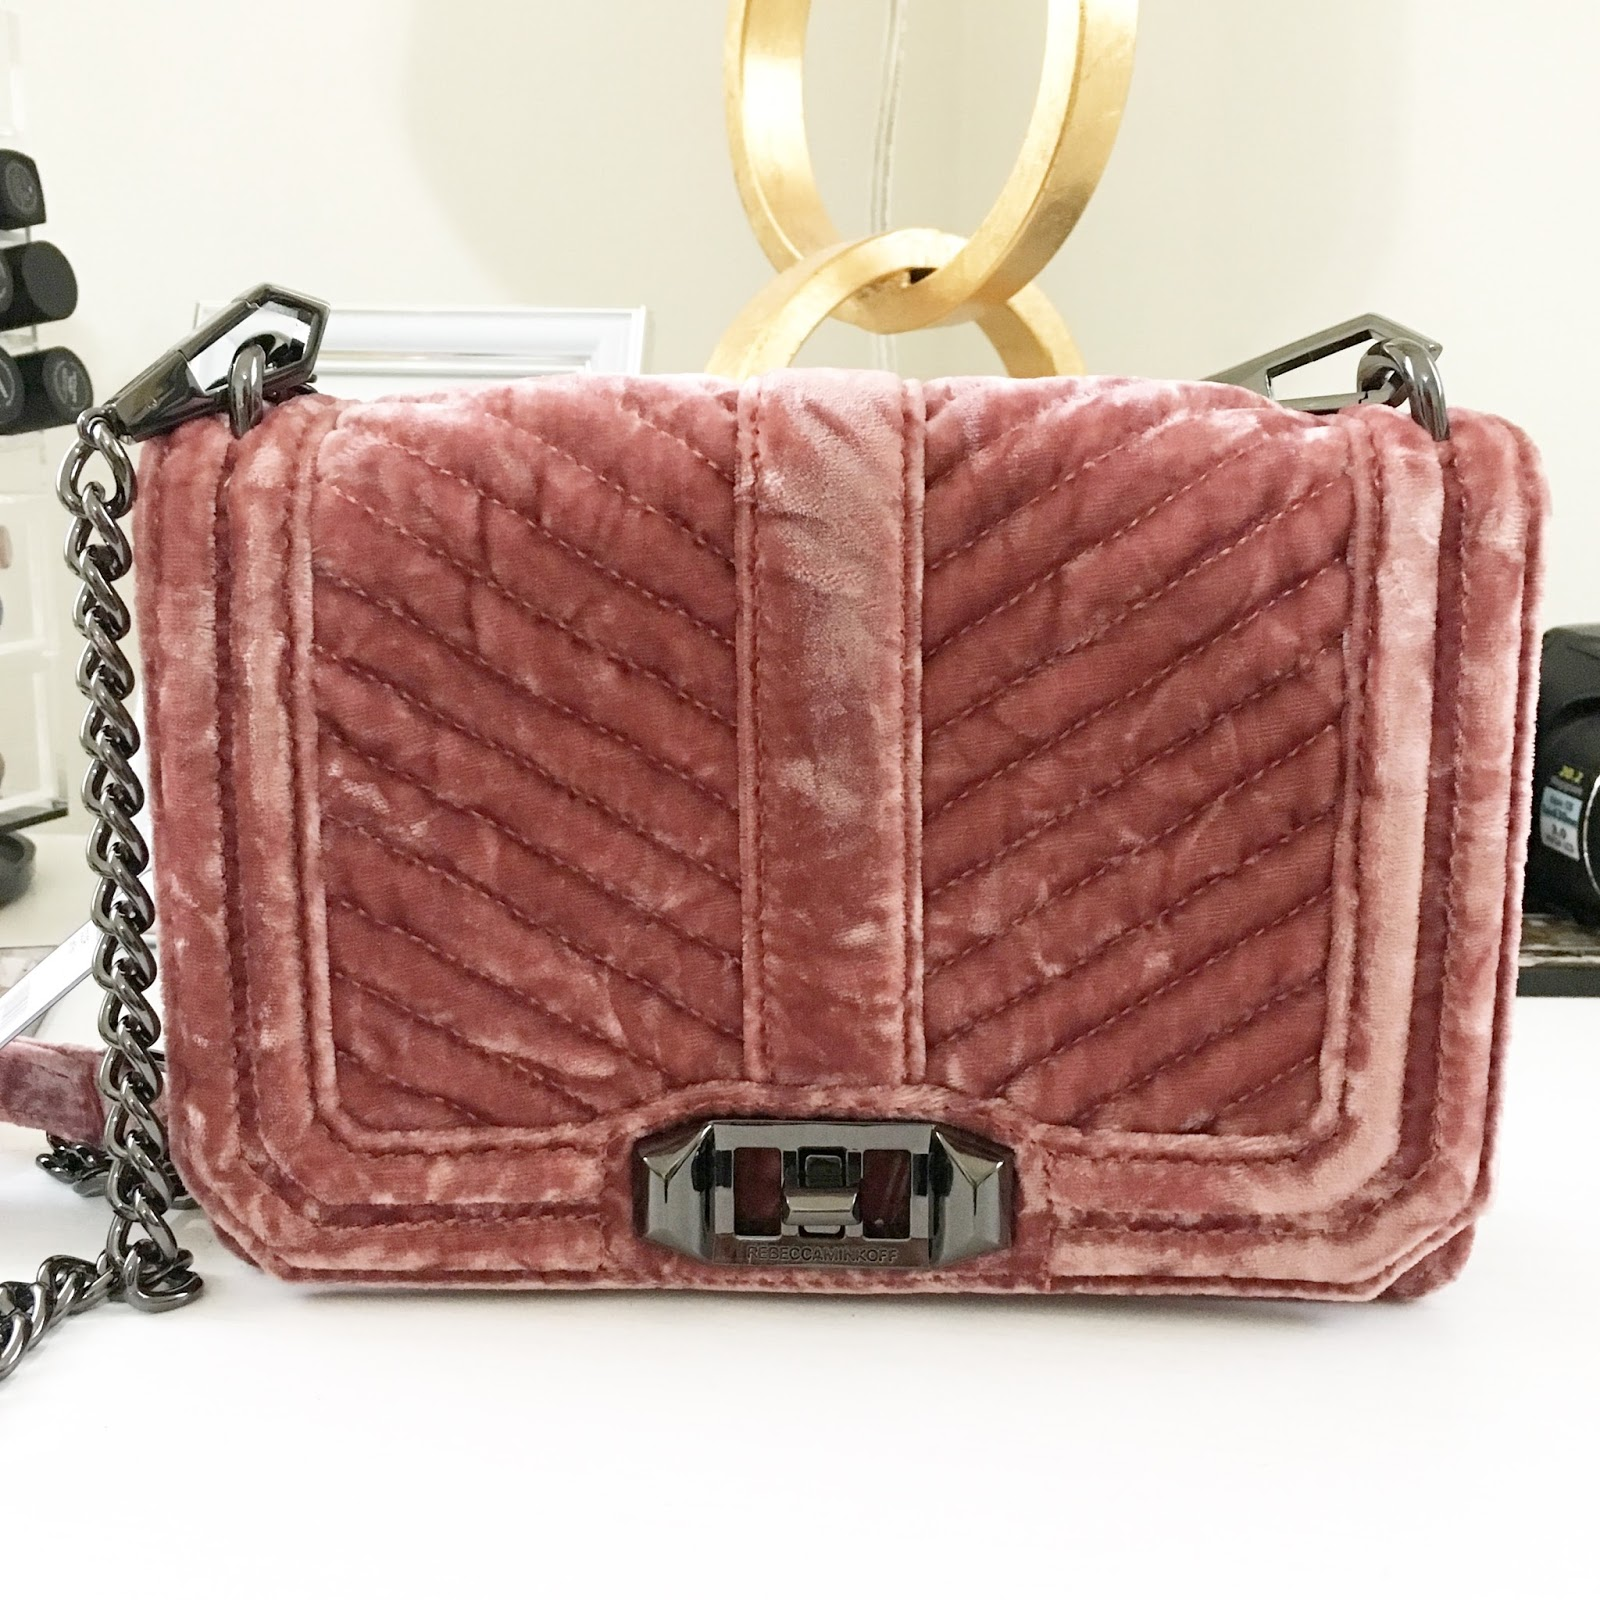 Want And Purchased This Gorgeous Rebecca Minkoff Velvet Bag From The Nordstrom Anniversary I Ve Always Wanted One Of Her Love Bags Thought